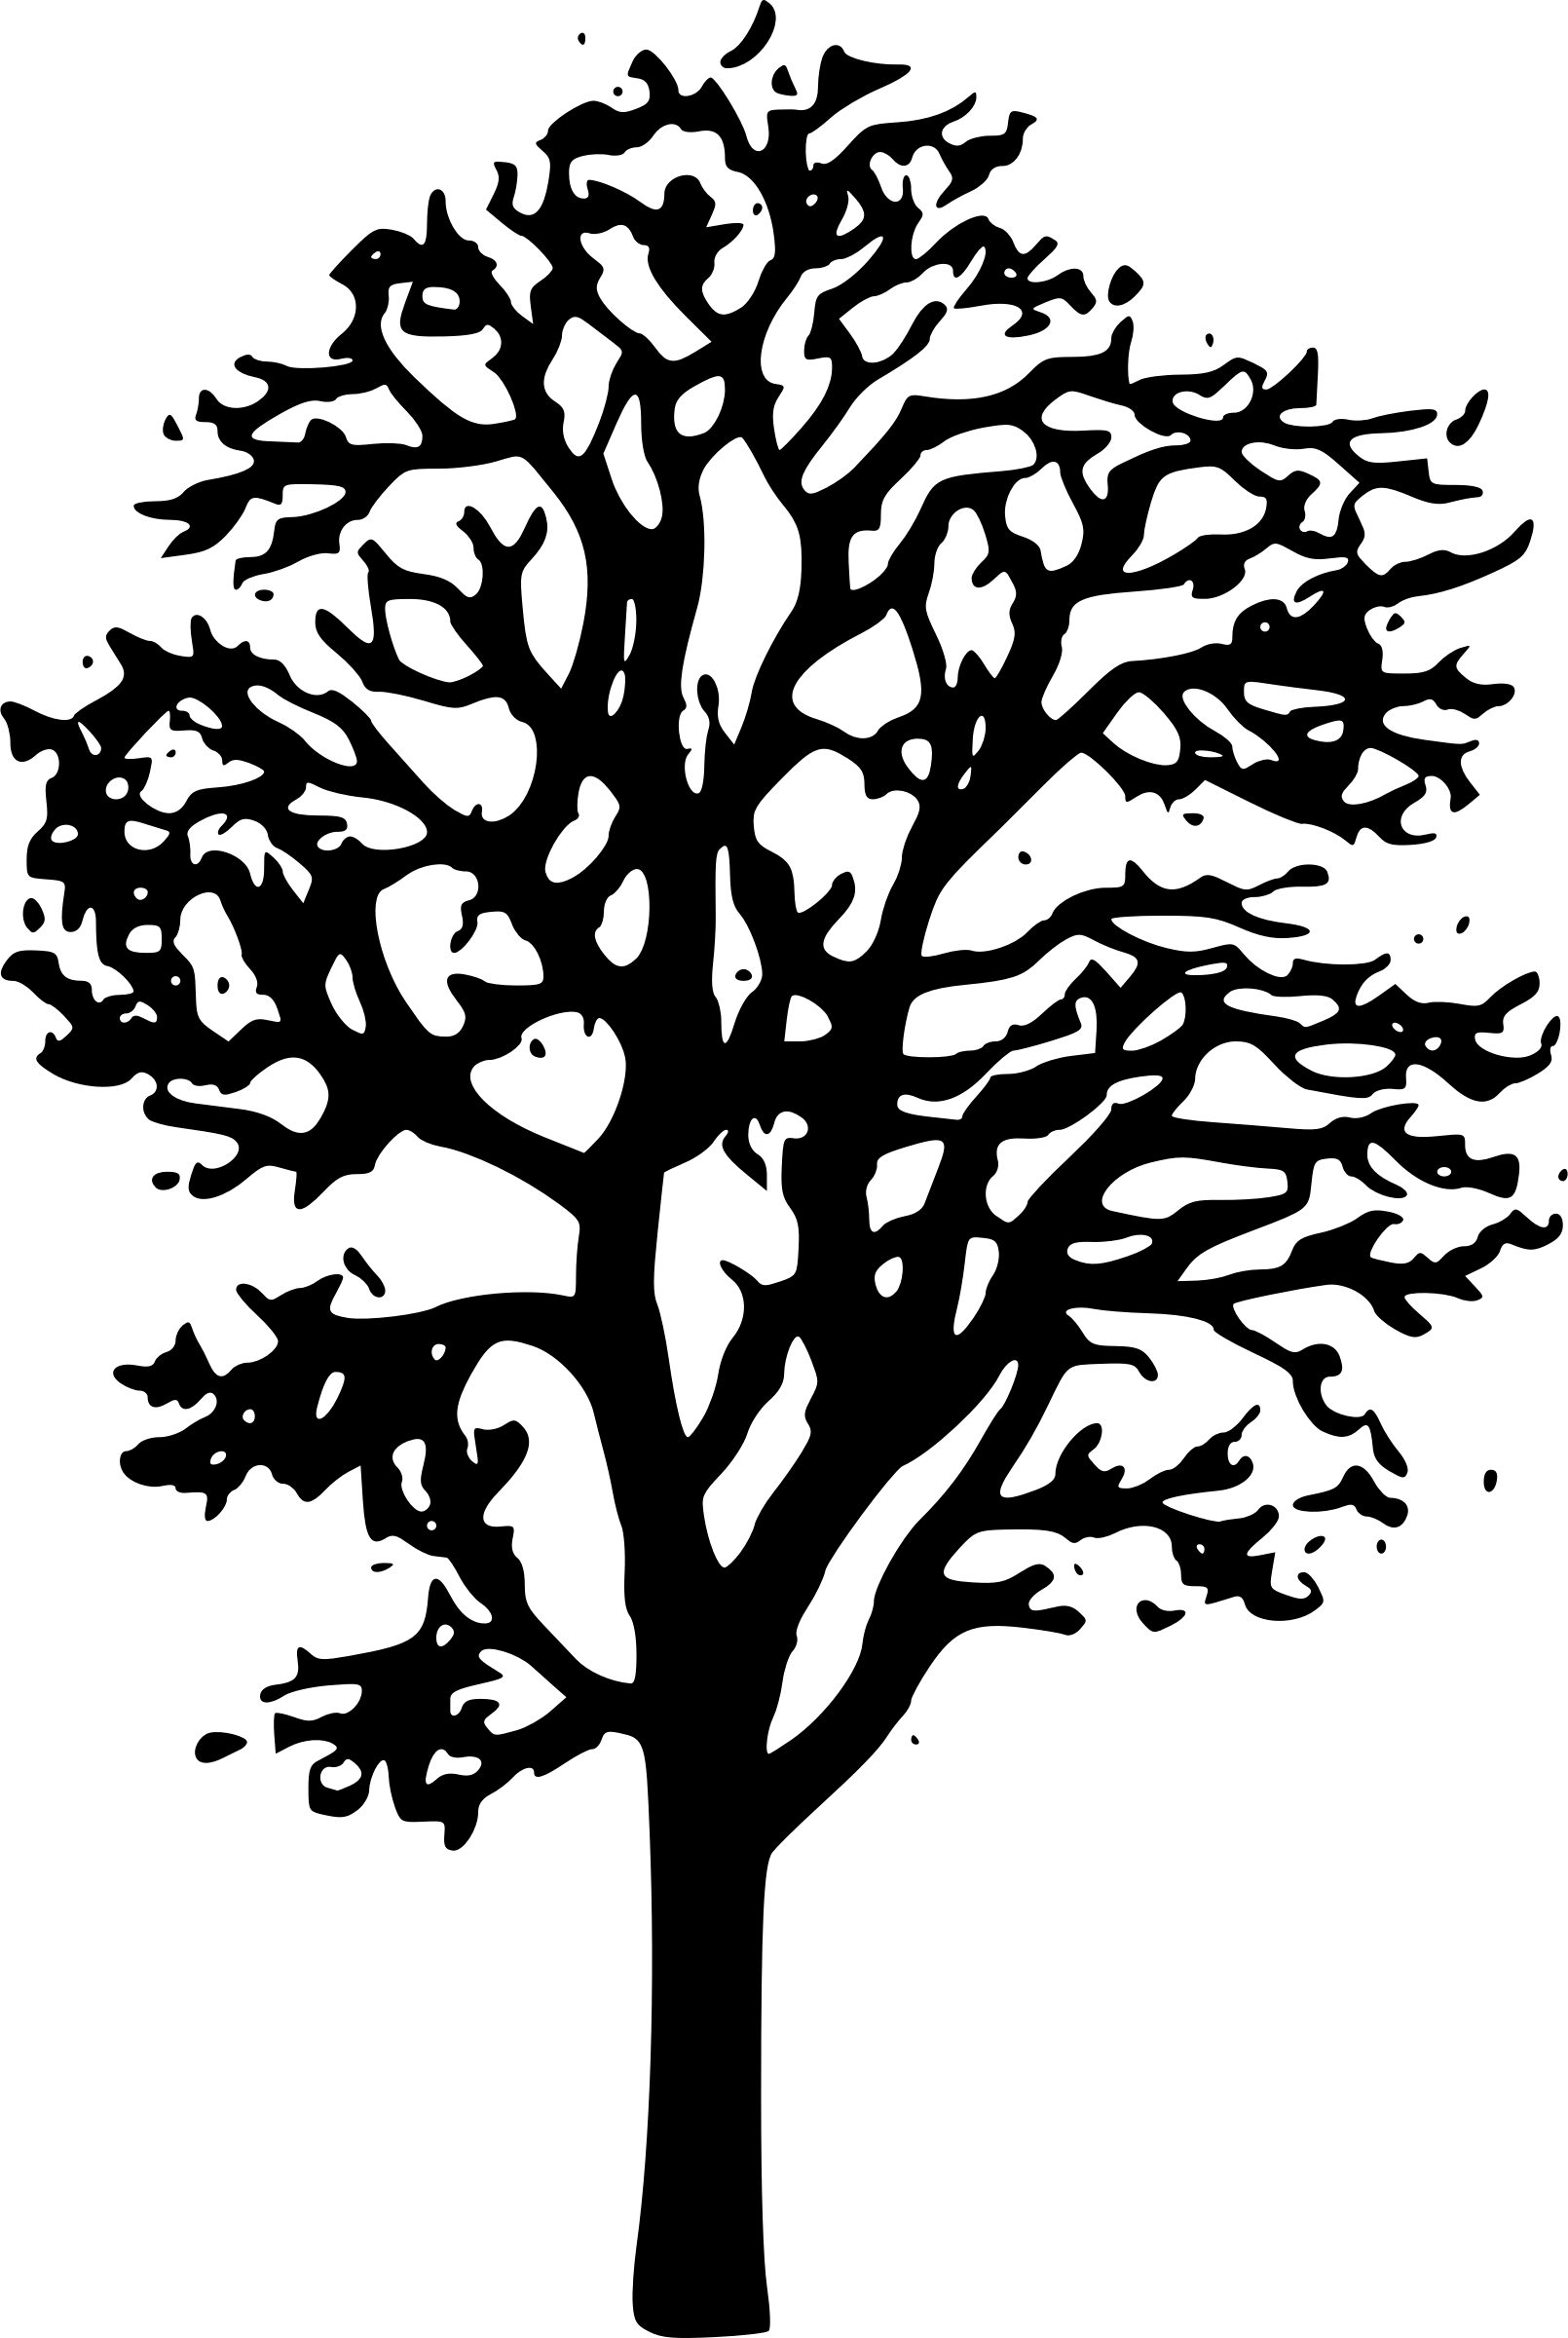 Branches Of Sycamore Tree Clipart